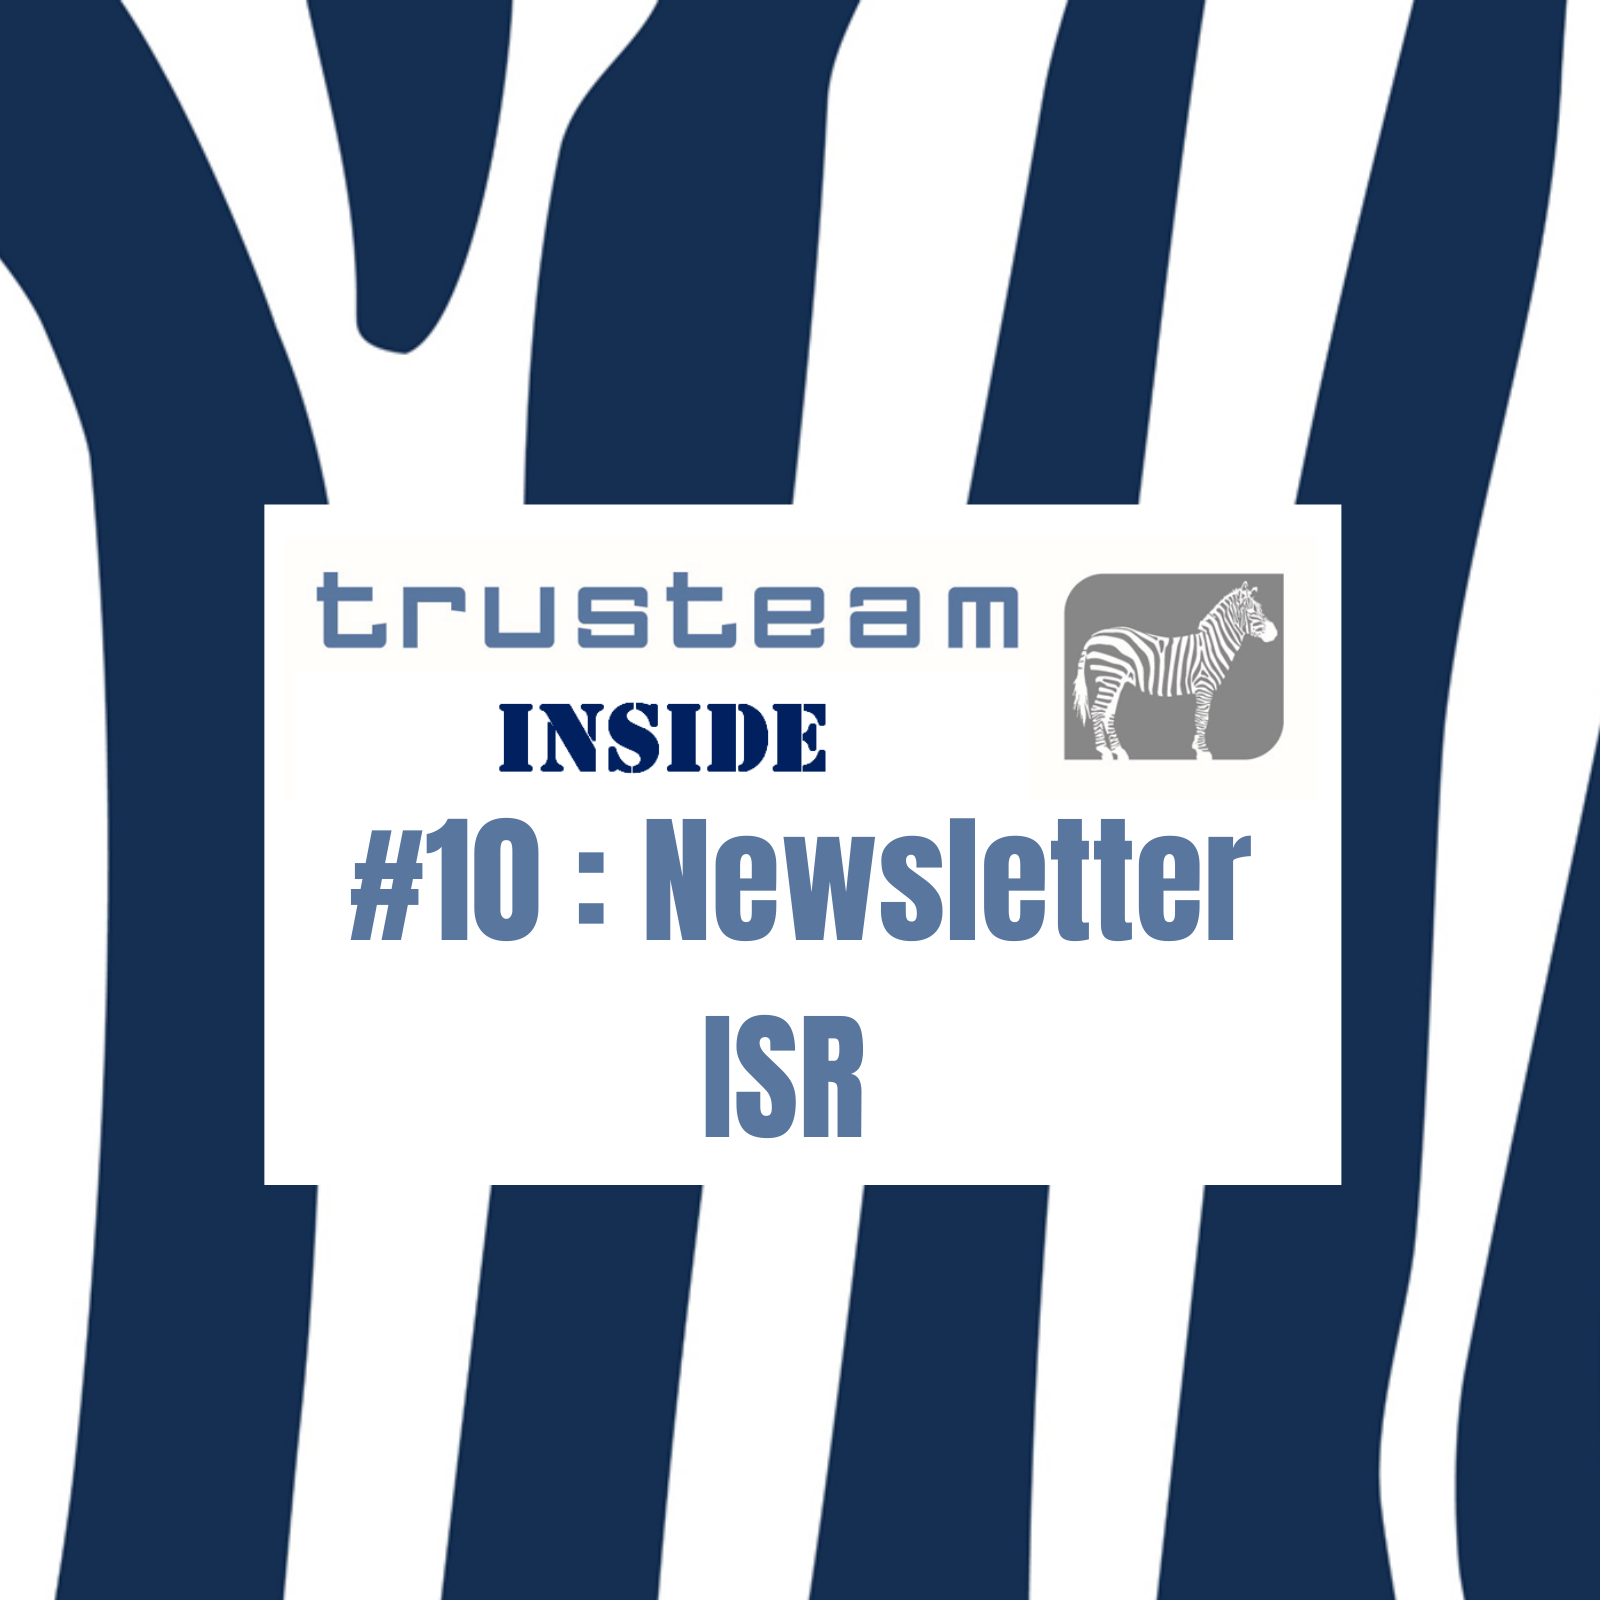 #10 Newsletter ISR Trusteam